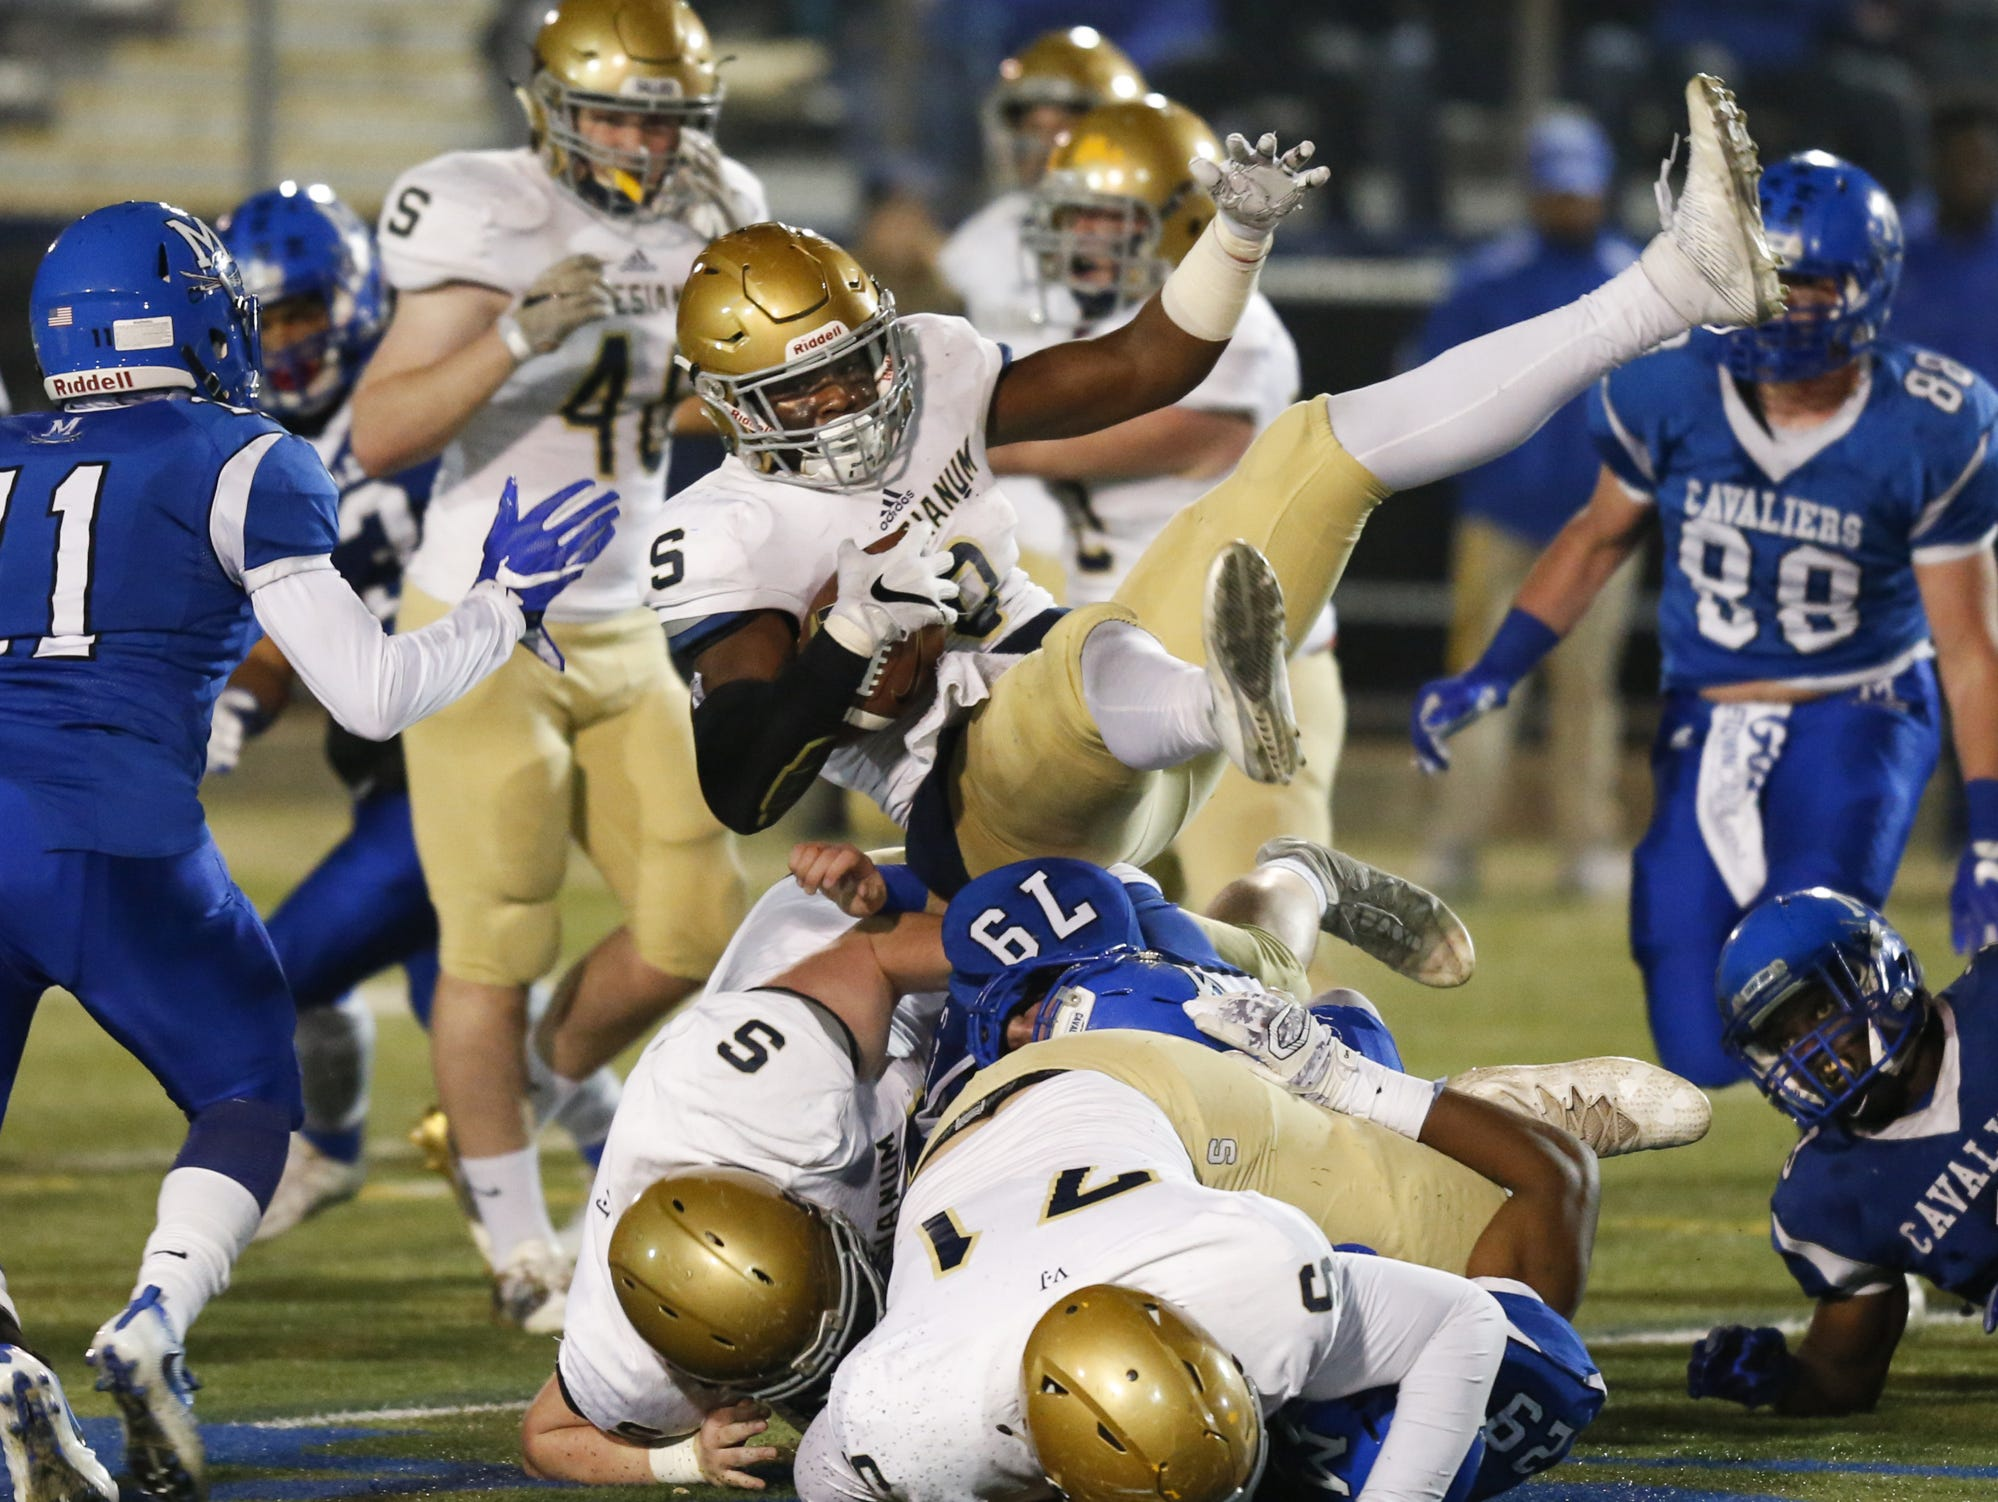 Salesianum's Josh Patrick is upended at the line on a run in the second quarter against Middletown in a DIAA Division I state tournament semifinal at Cavalier Stadium Friday.